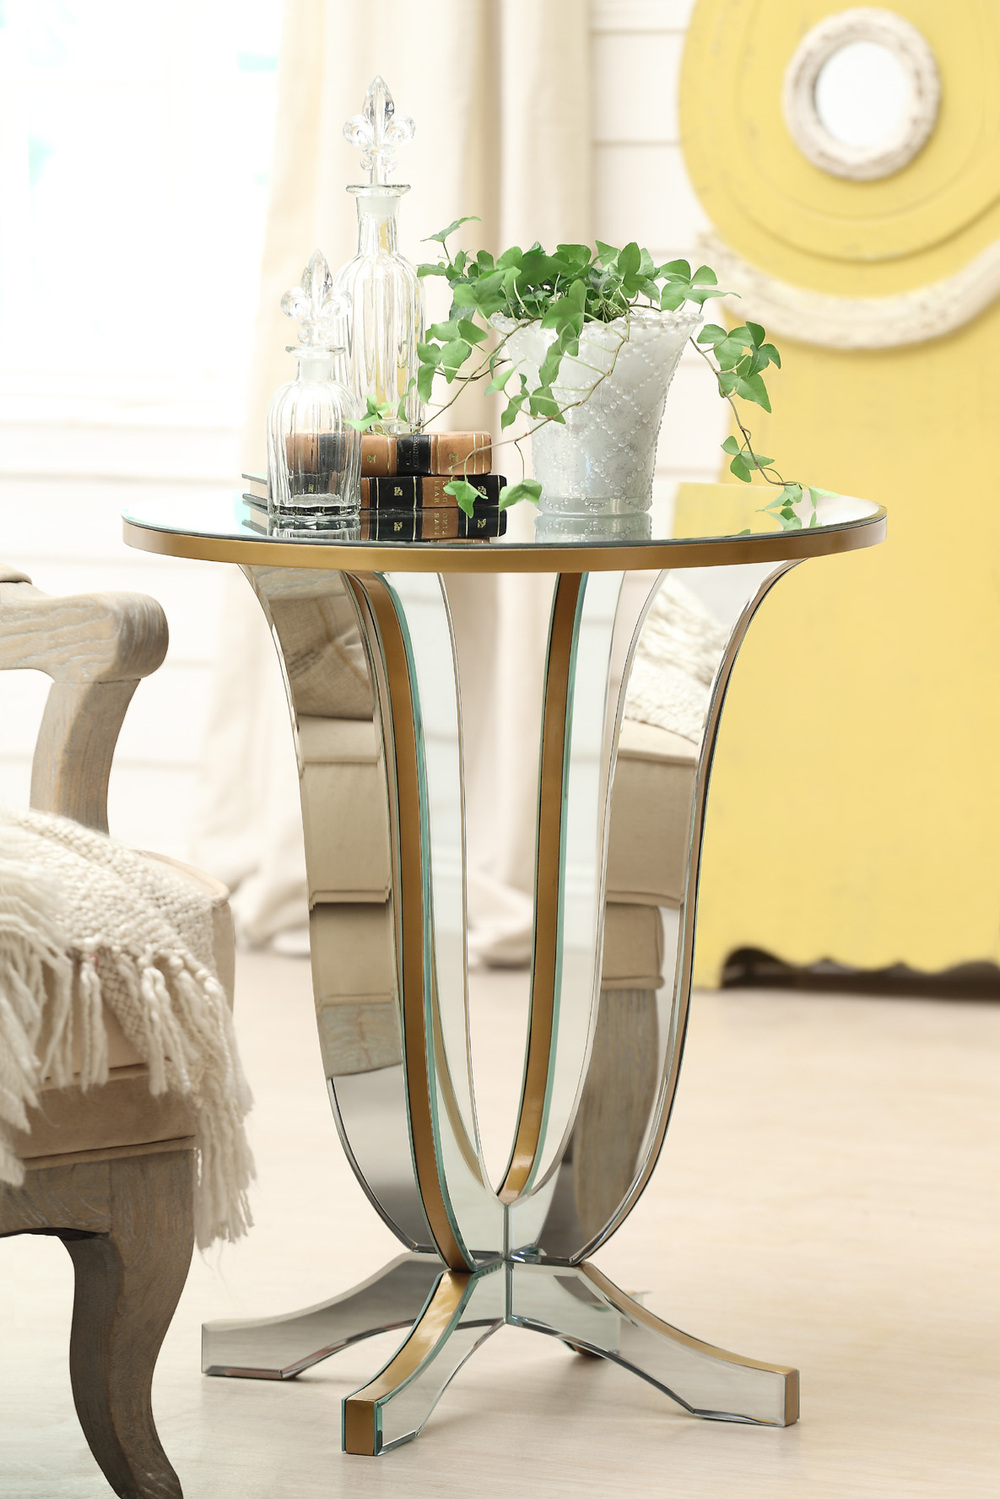 astonishing small accent tables for living room table gold furniture modern kijiji white glass antique decorative target round outdoor full size tall perspex cube deck coffee